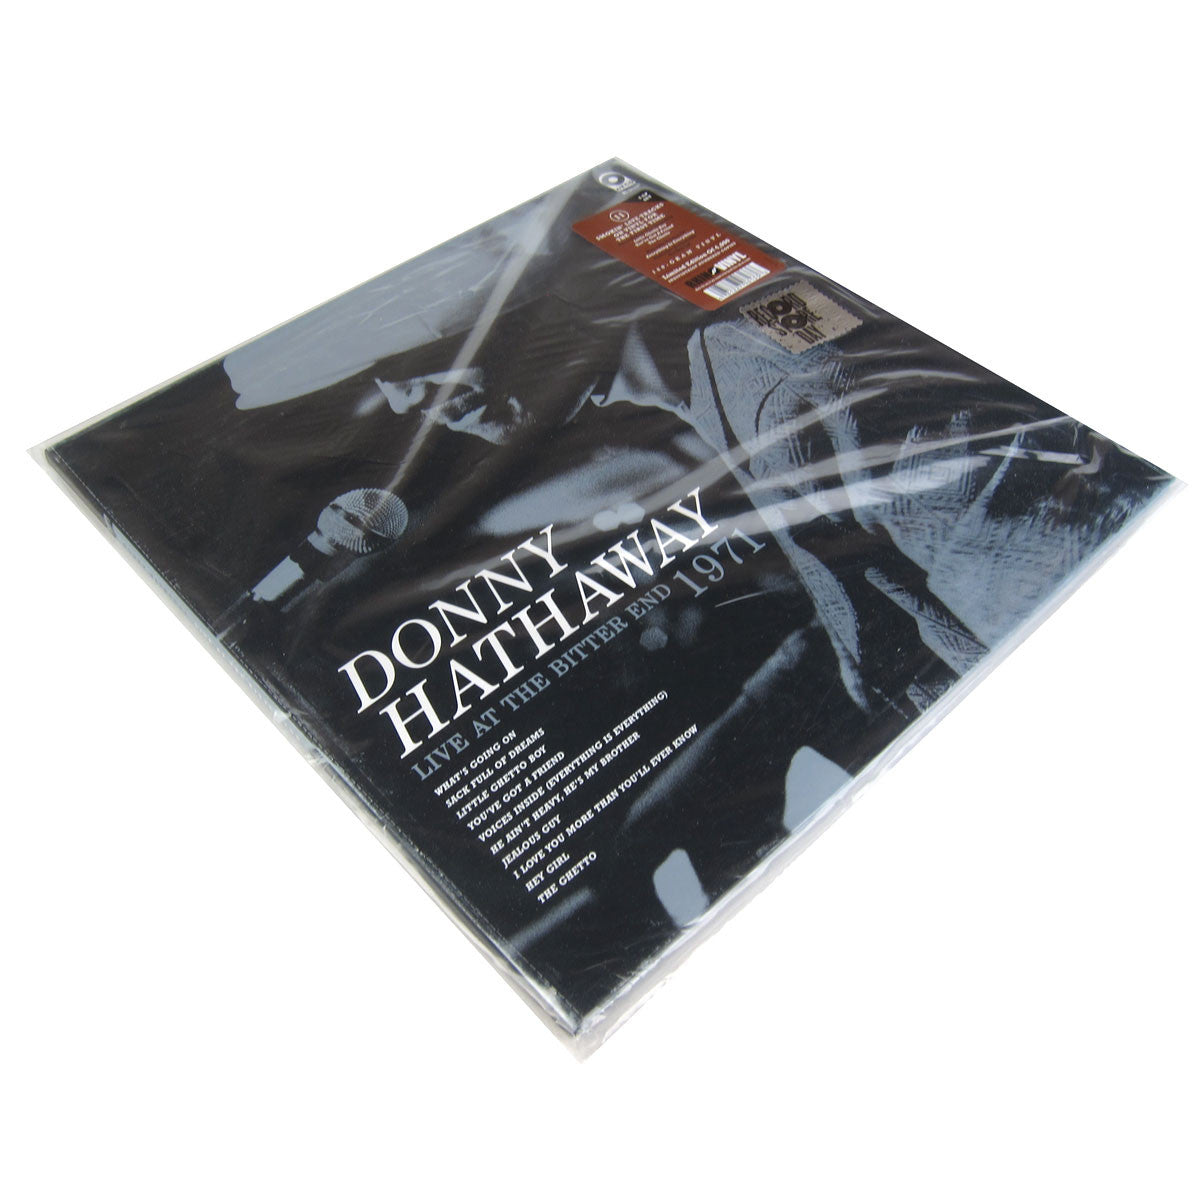 Donny Hathaway: Live At the Bitter End 1971 180g Vinyl 2LP (Record Store Day 2014)